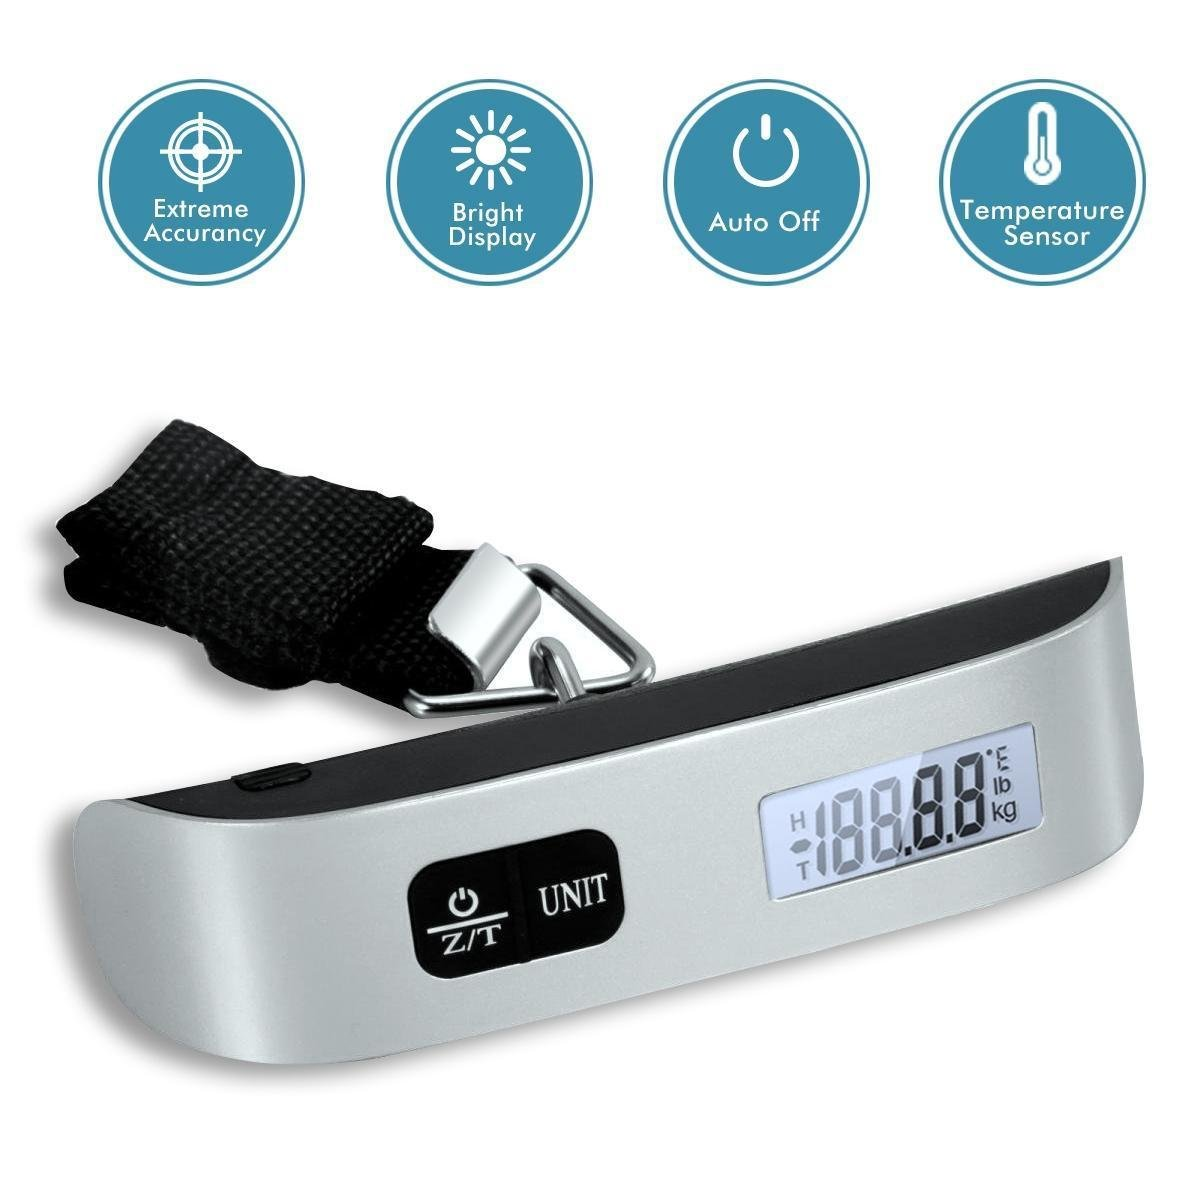 Dr.Meter Mini 110lb/50kg LCD Display Balance Digital luggage Hanging Scale Hook Luggage Scale Rubber Paint Technology Temperature Sensor